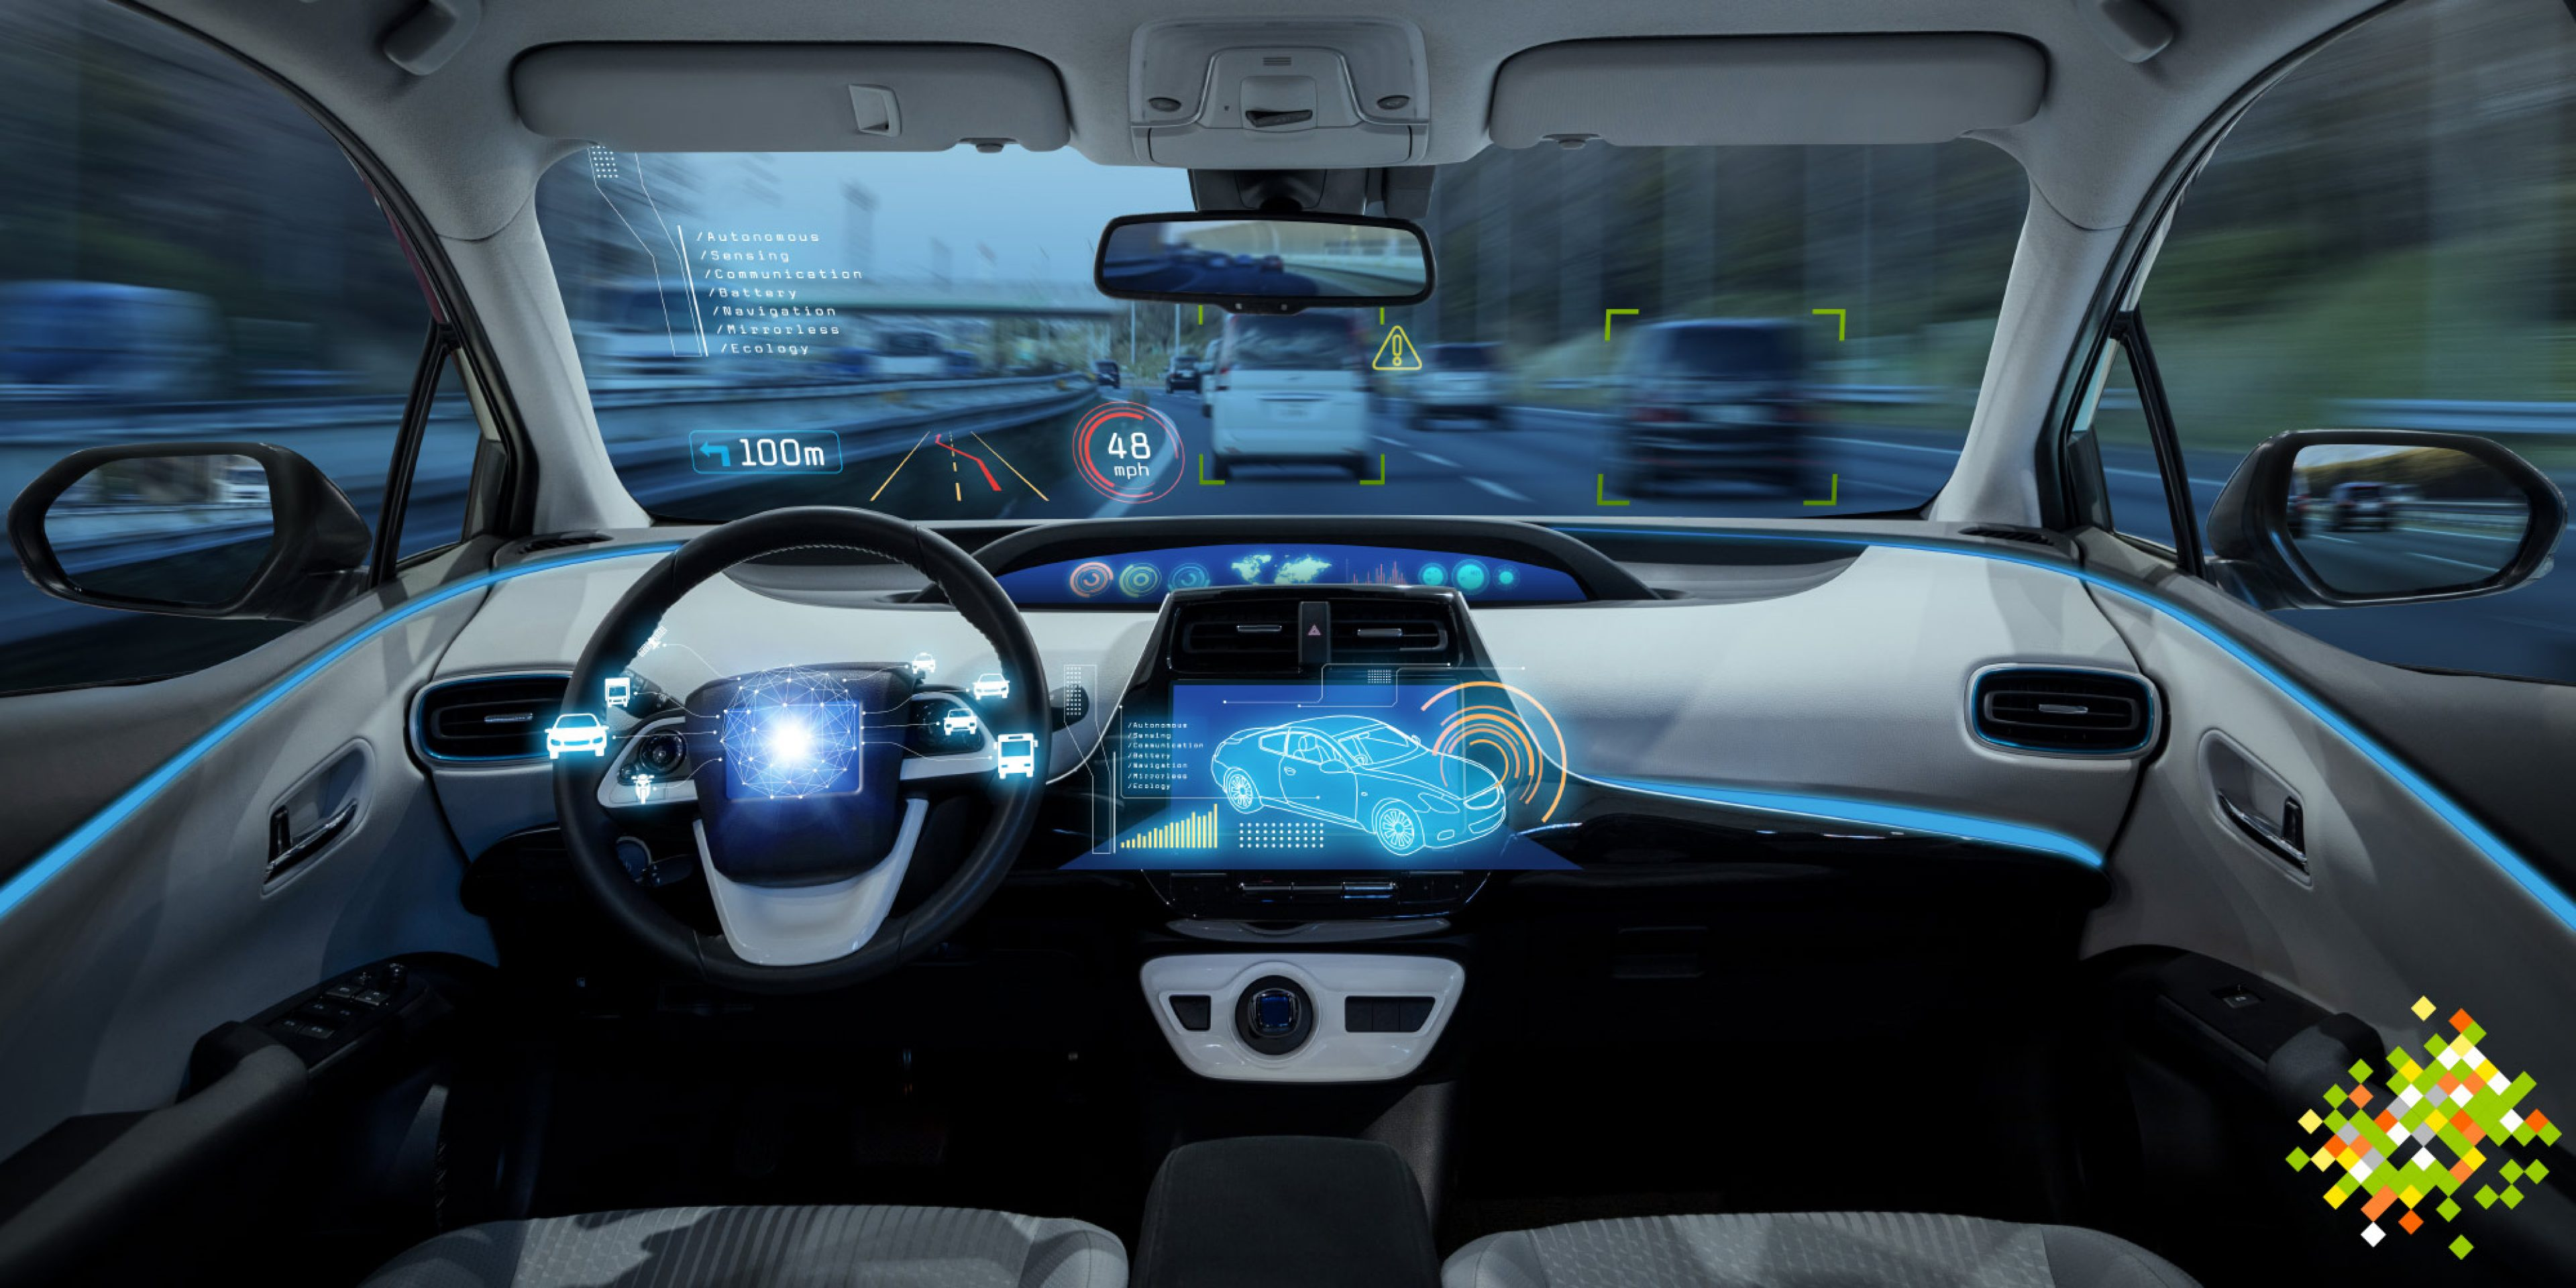 Inside a vehicle with autonomous driving technology